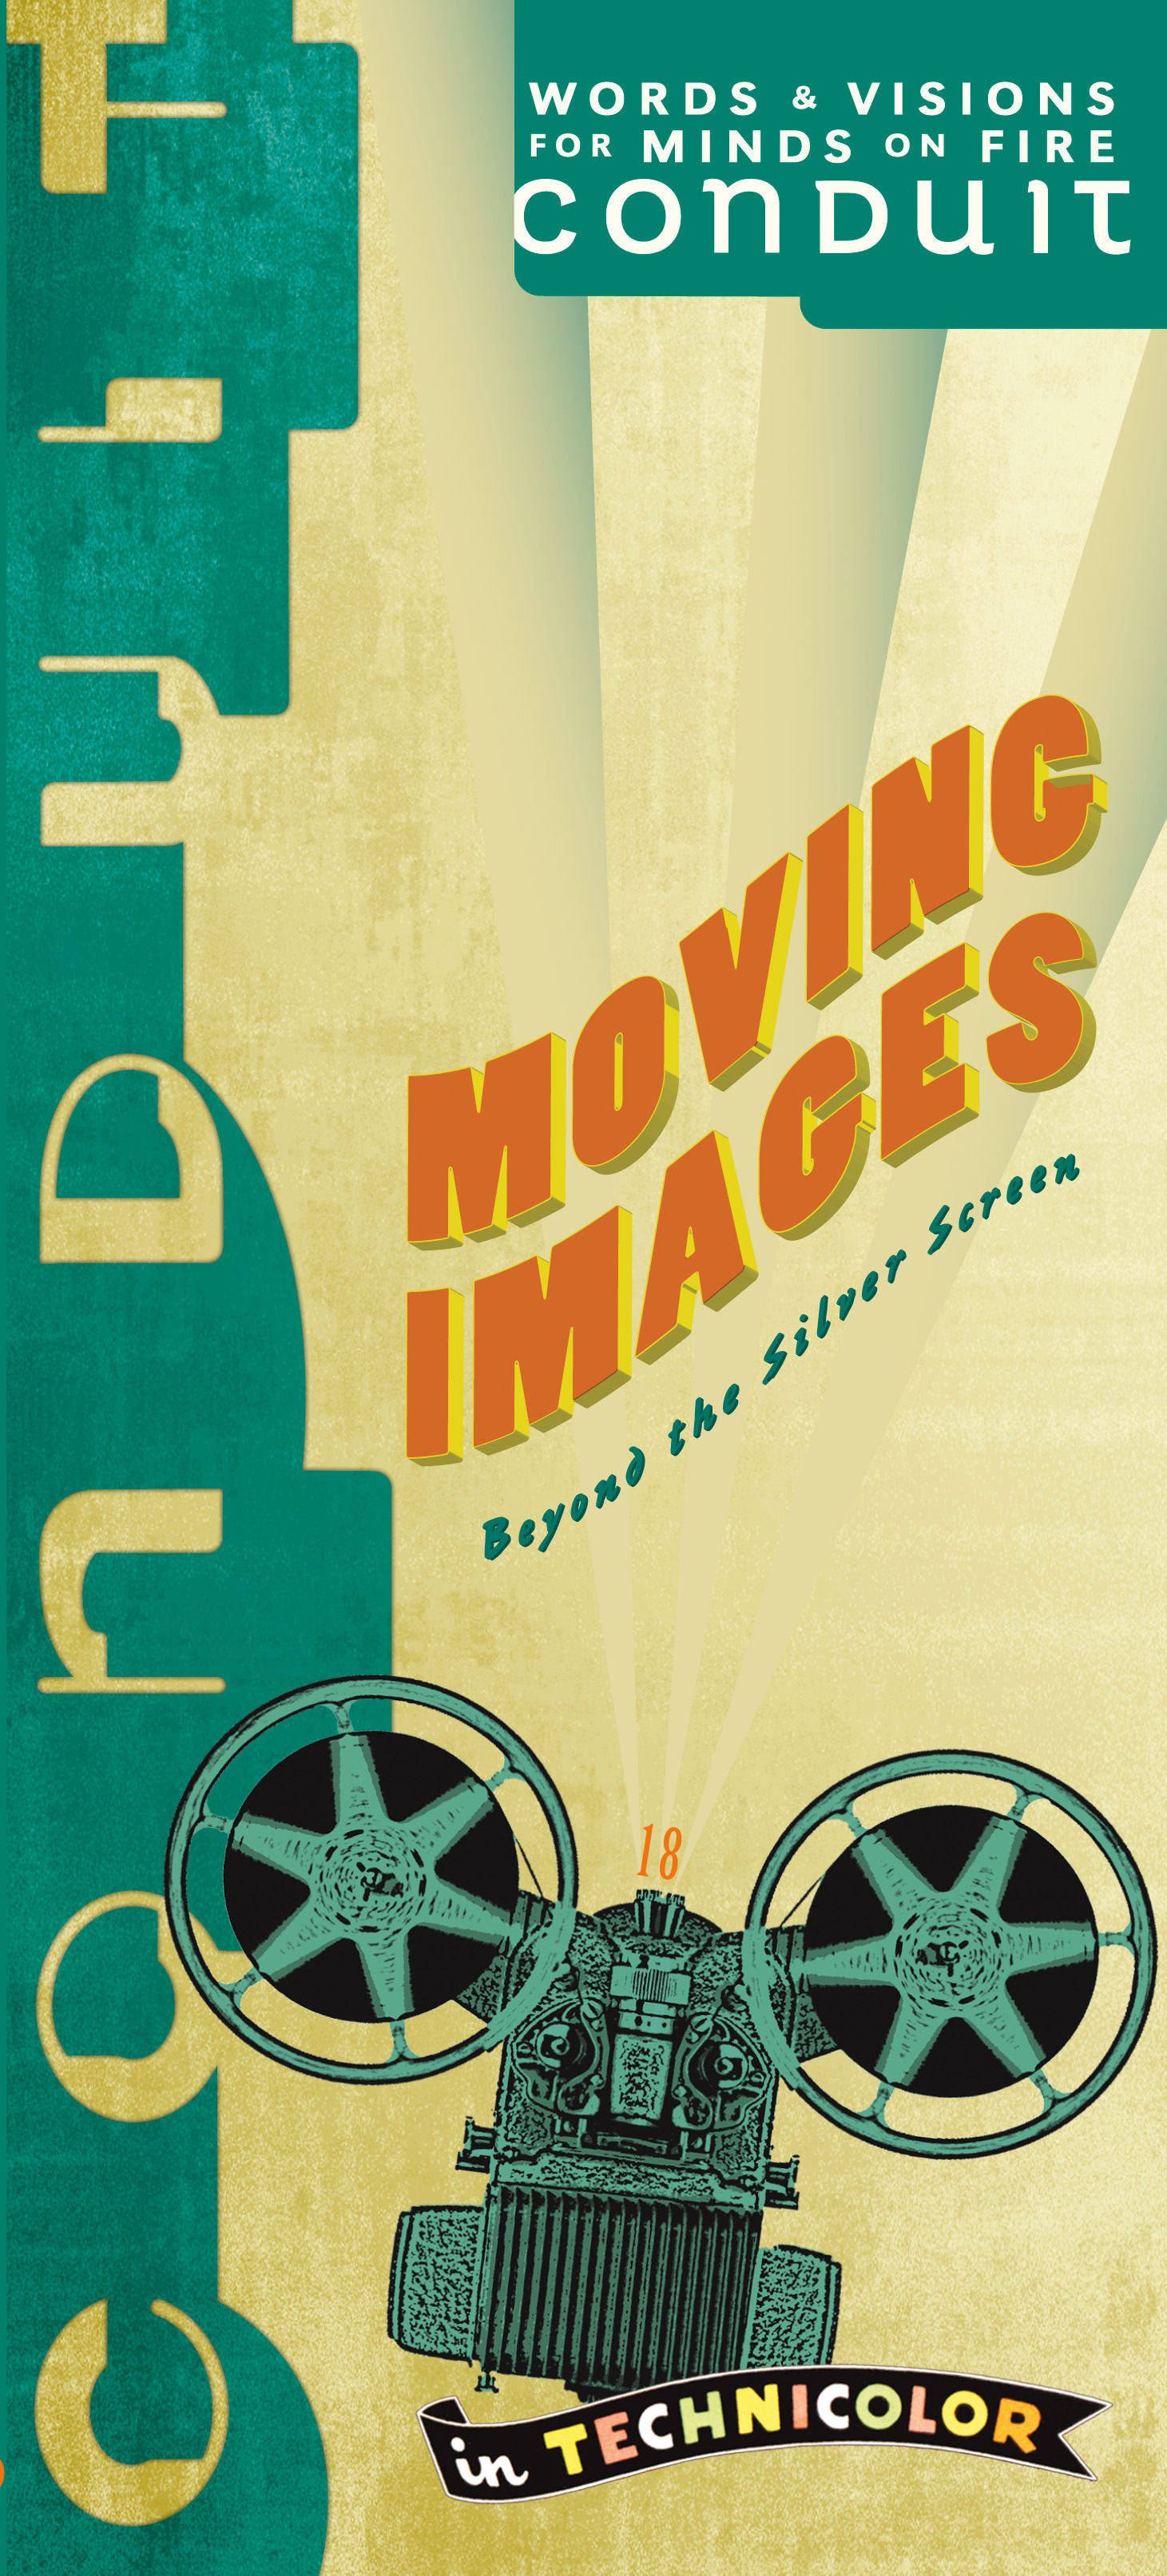 #18 Moving Images